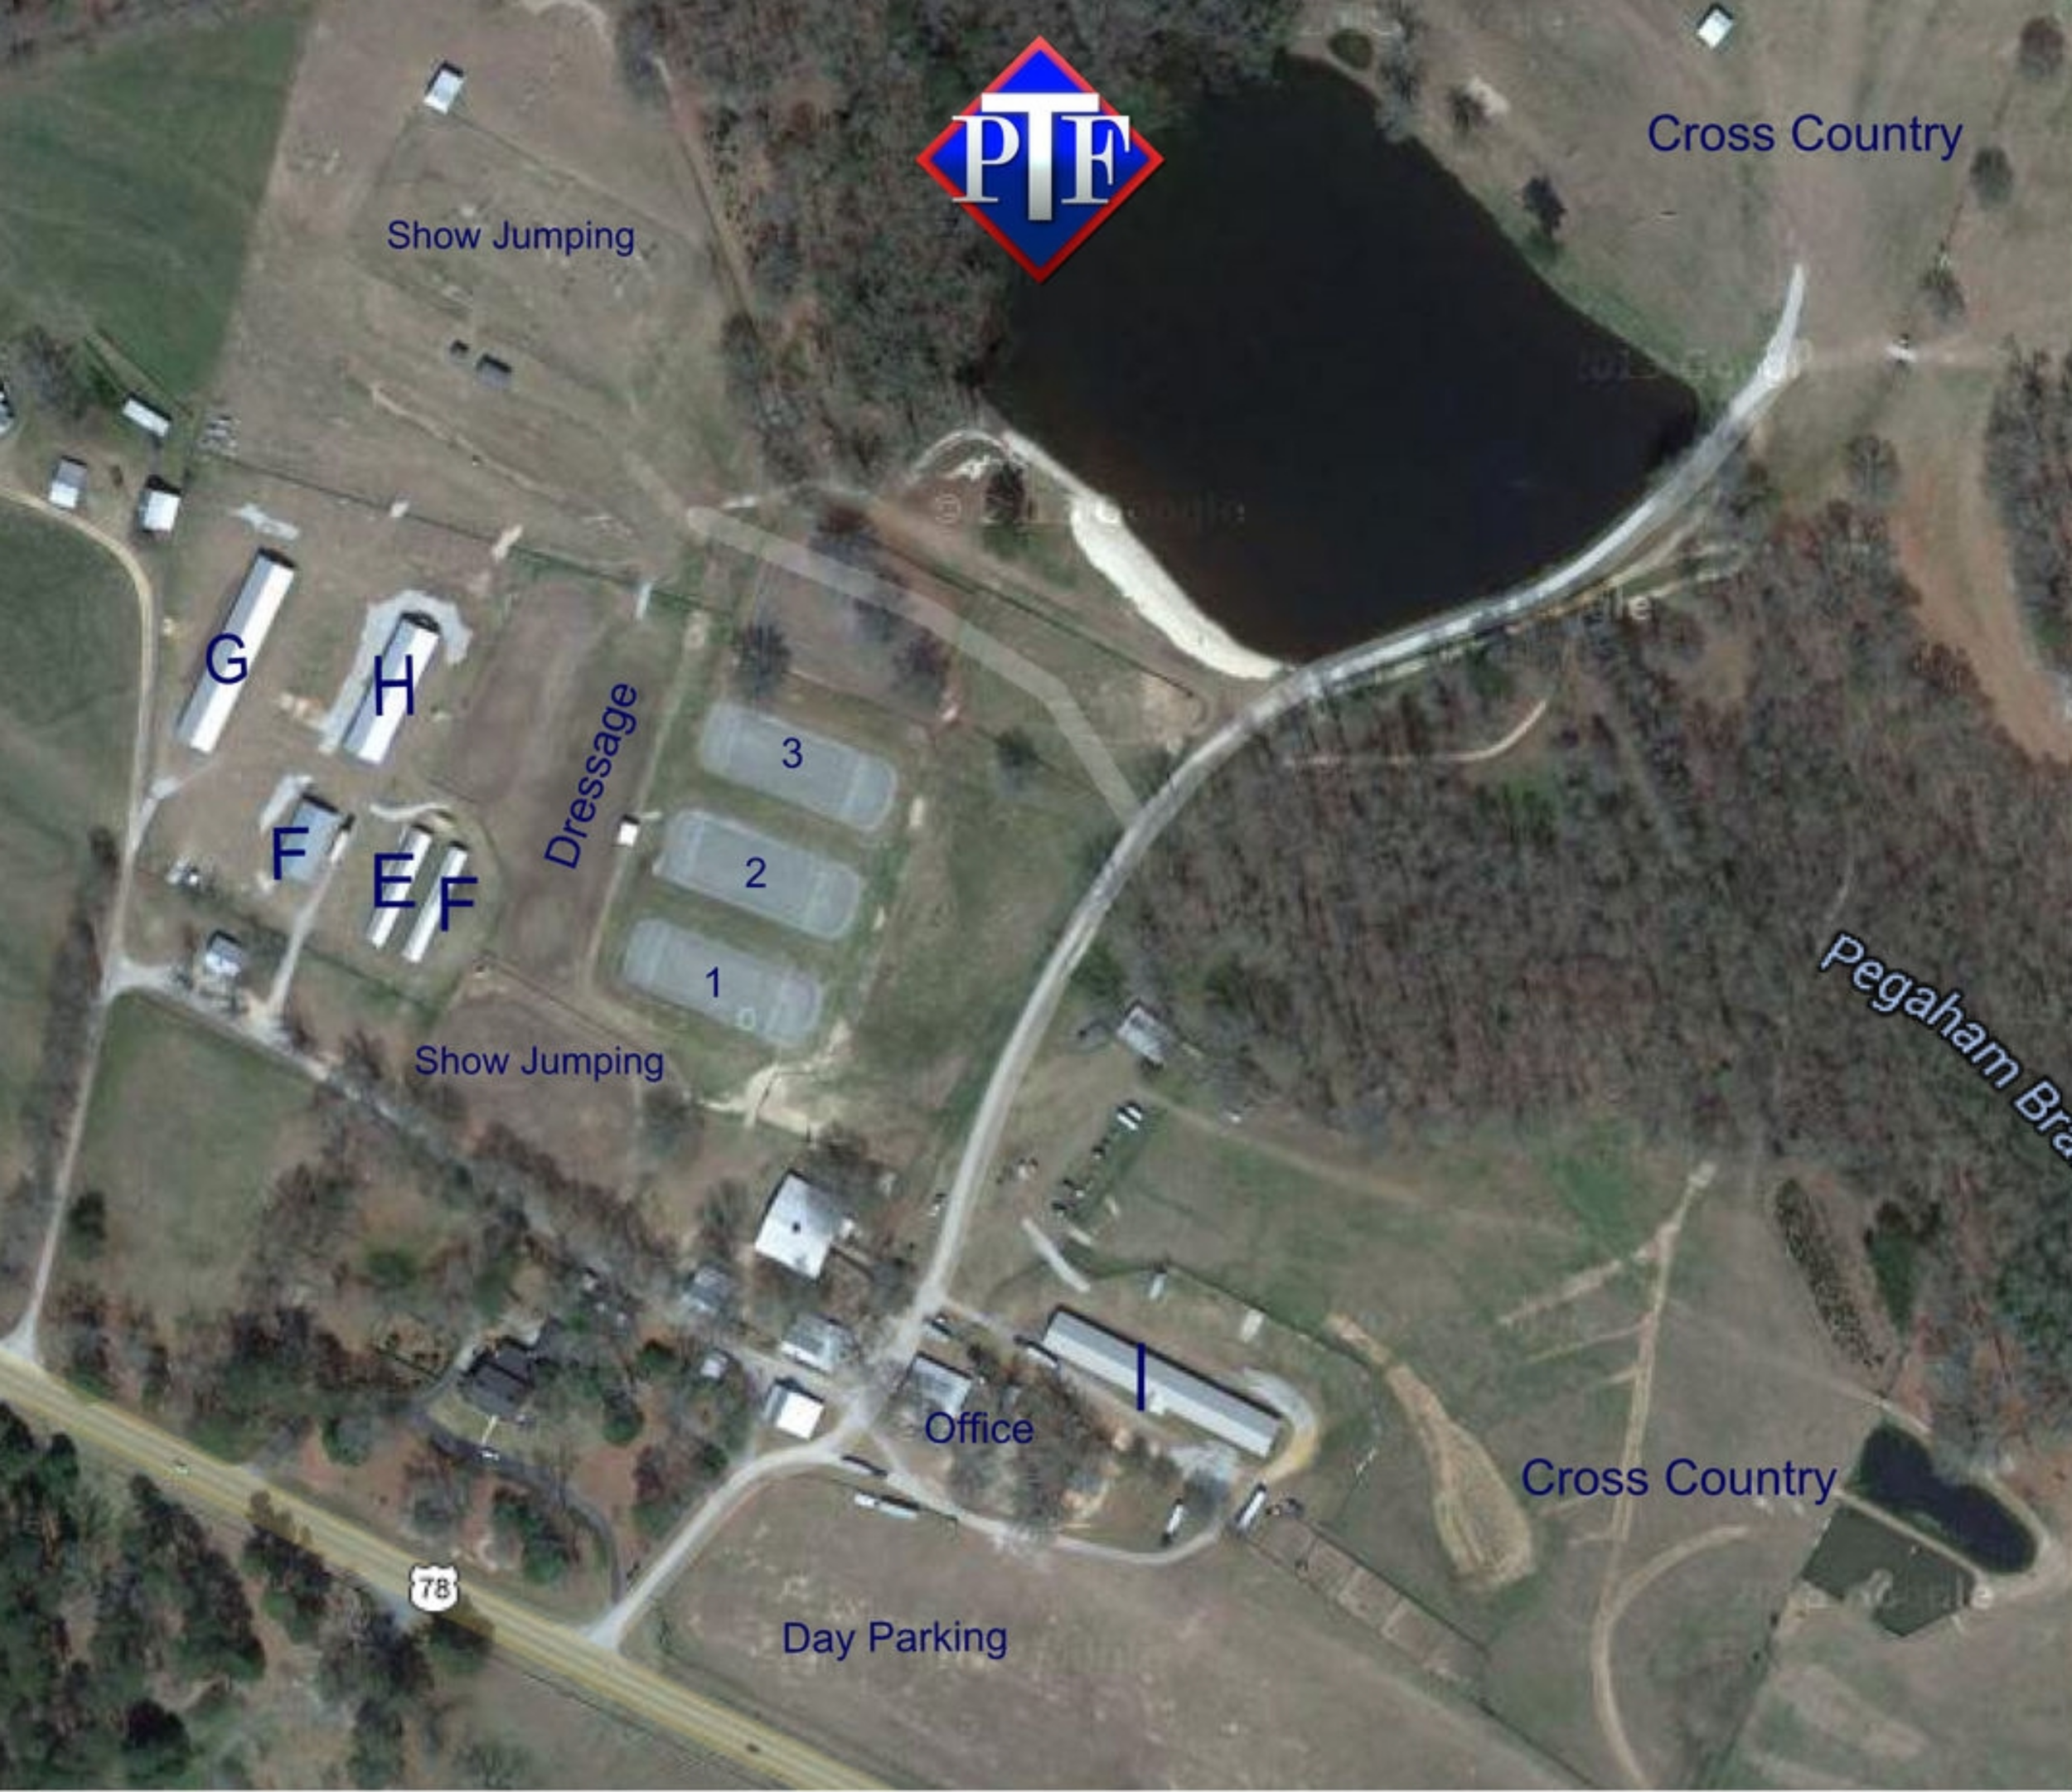 Map of Facility and Stabling